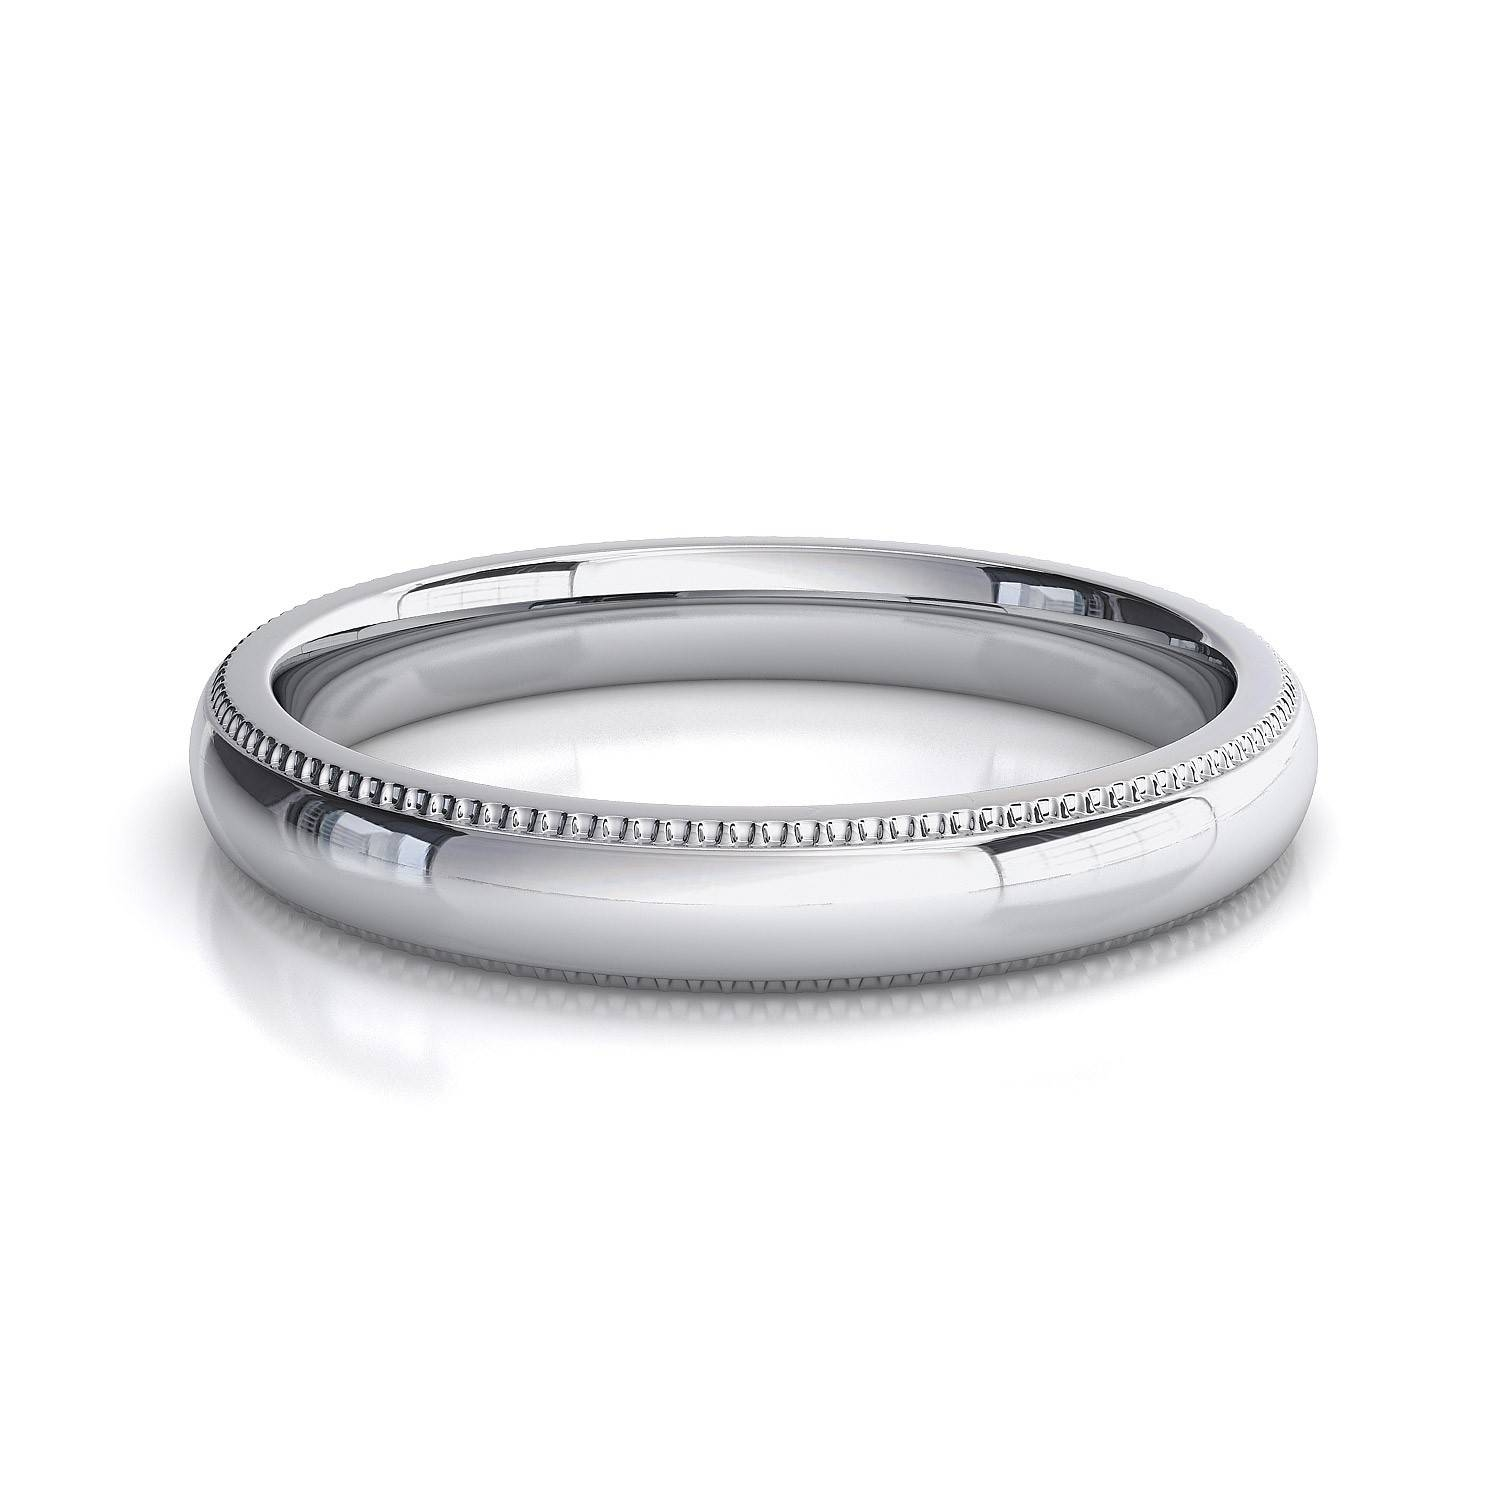 3 Mm Comfort Fit Milgrain Women's Plain Wedding Band In 14K White Gold Pertaining To Women's Platinum Wedding Bands (View 2 of 15)